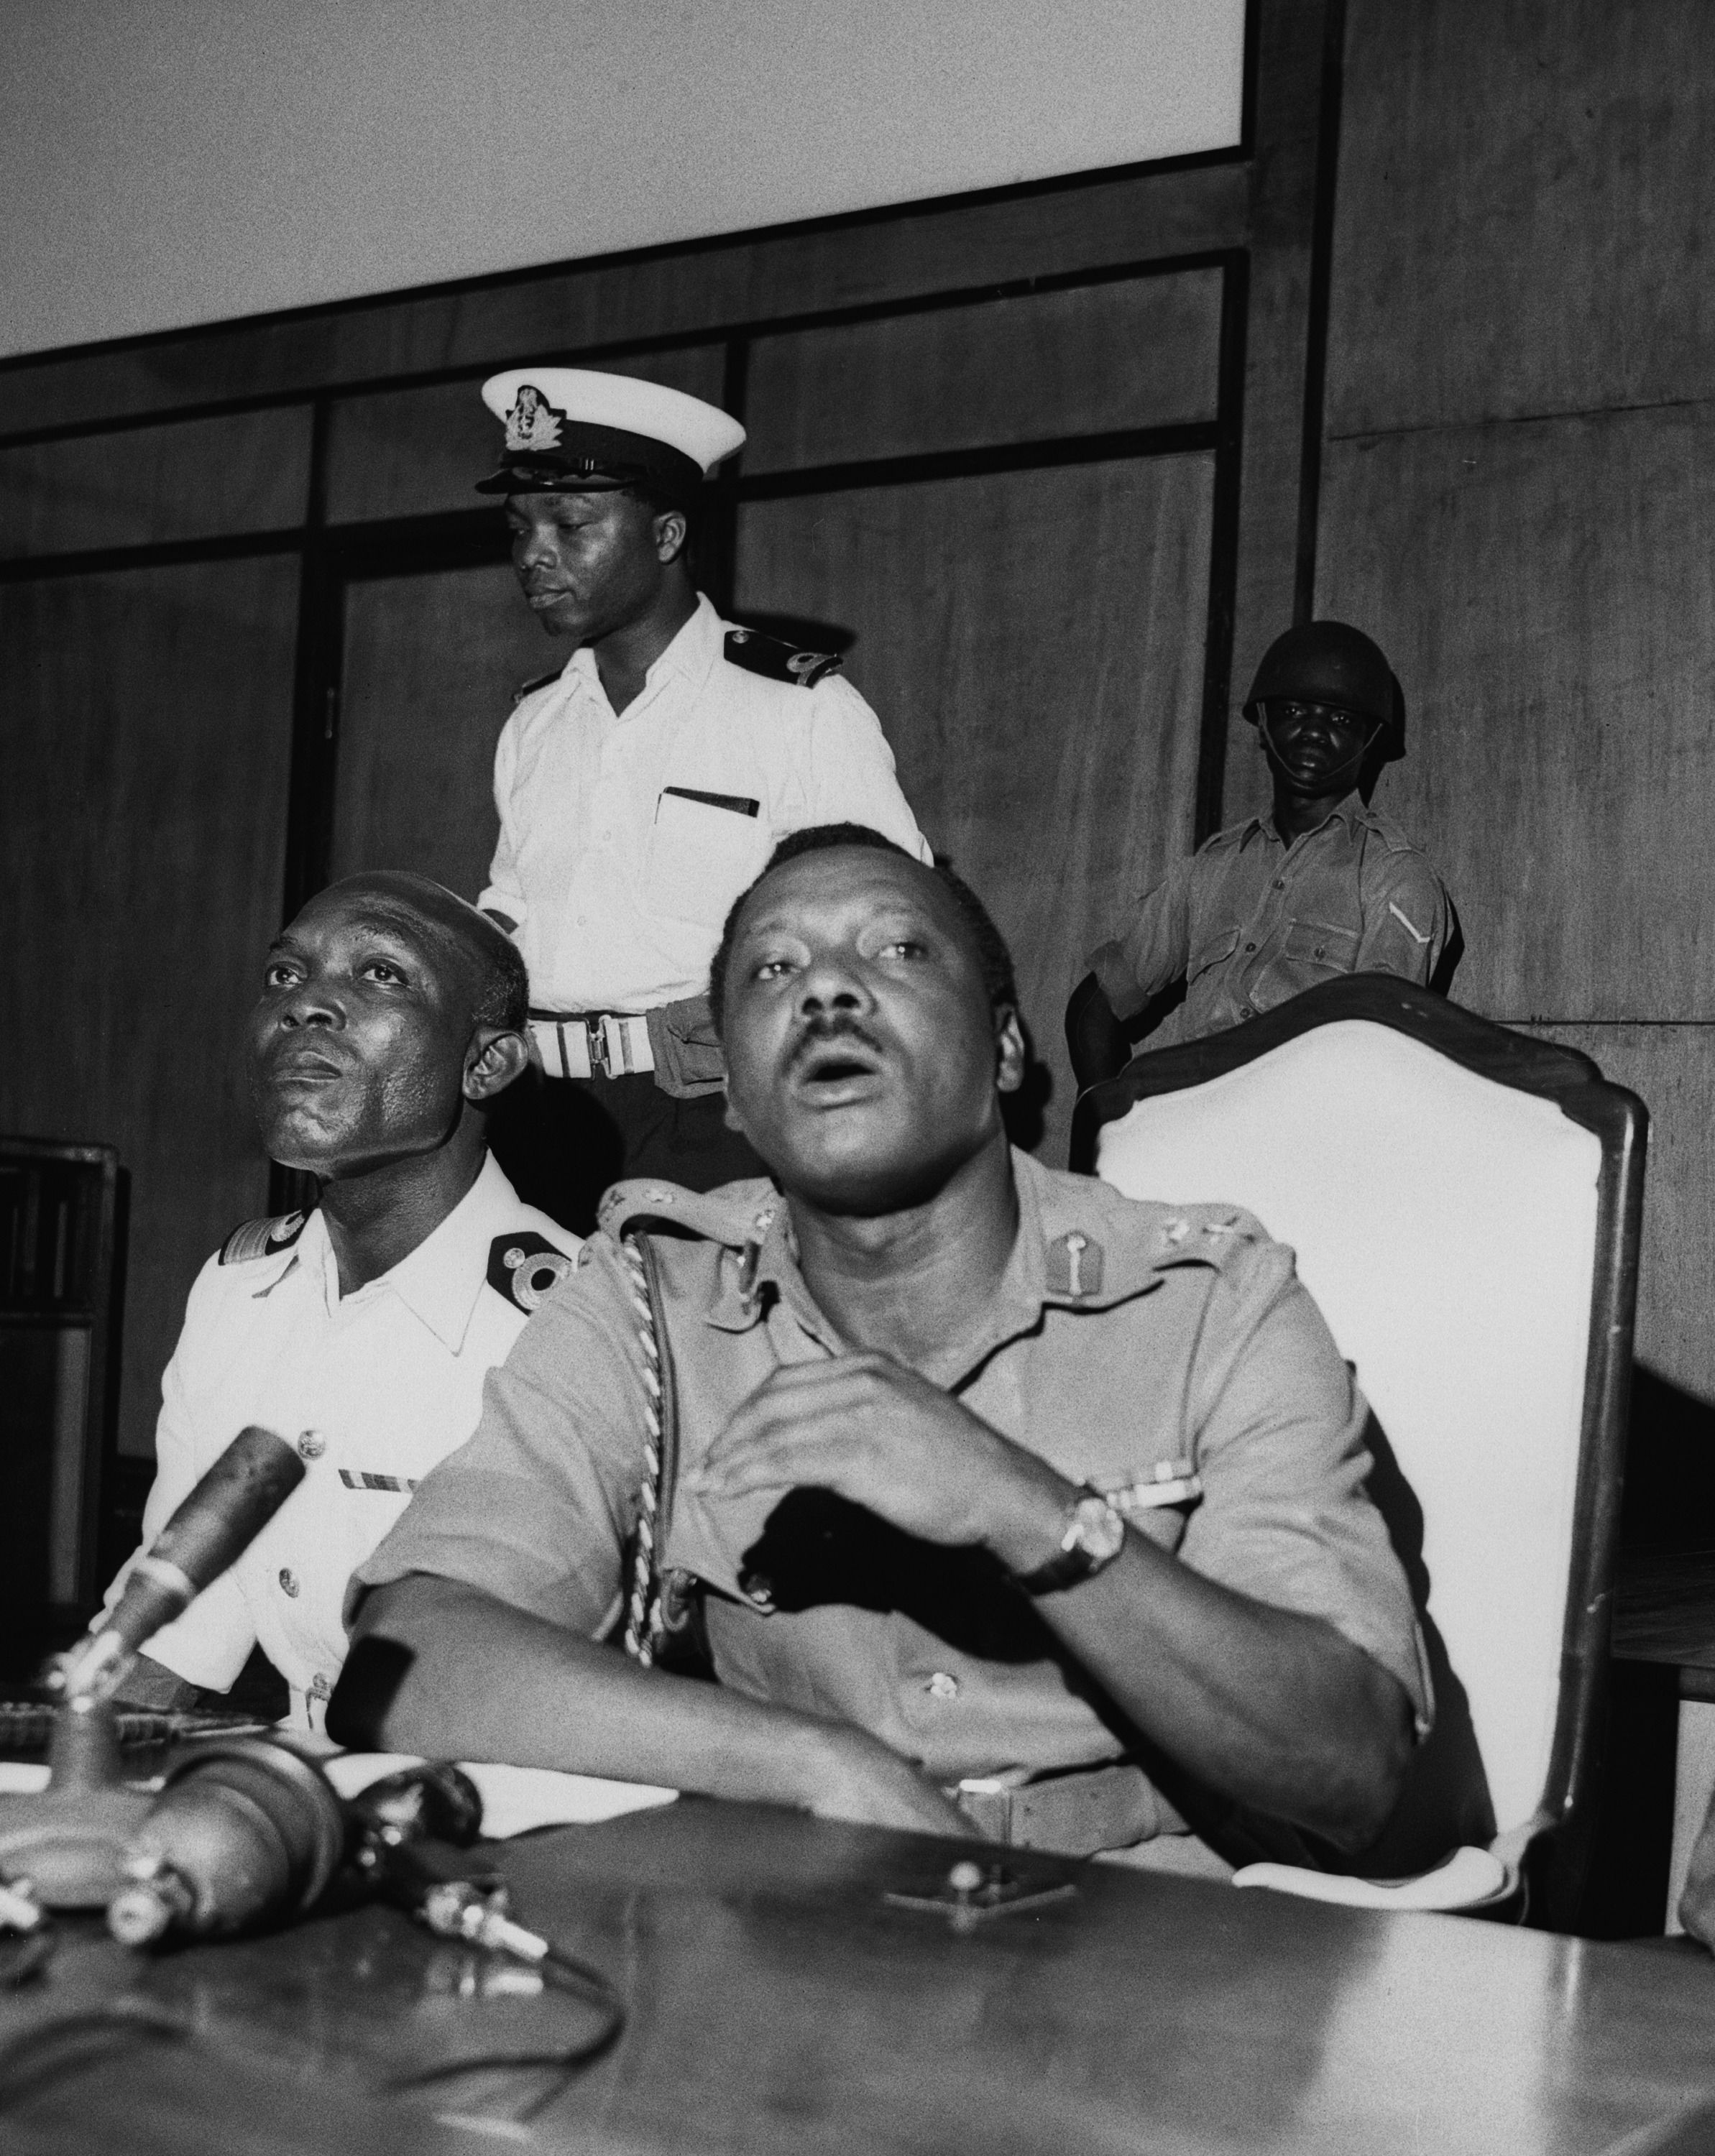 1. Major General Johnson Aguiyi-Ironsi in Nigeria, c. 1966. (Photo by Norman Potter/Stringer via Getty Images) / 2. Colonel Odumegwu Ojukwu, c. 1966. (Photo by Keystone Features/Hulton Archive via Getty Images)